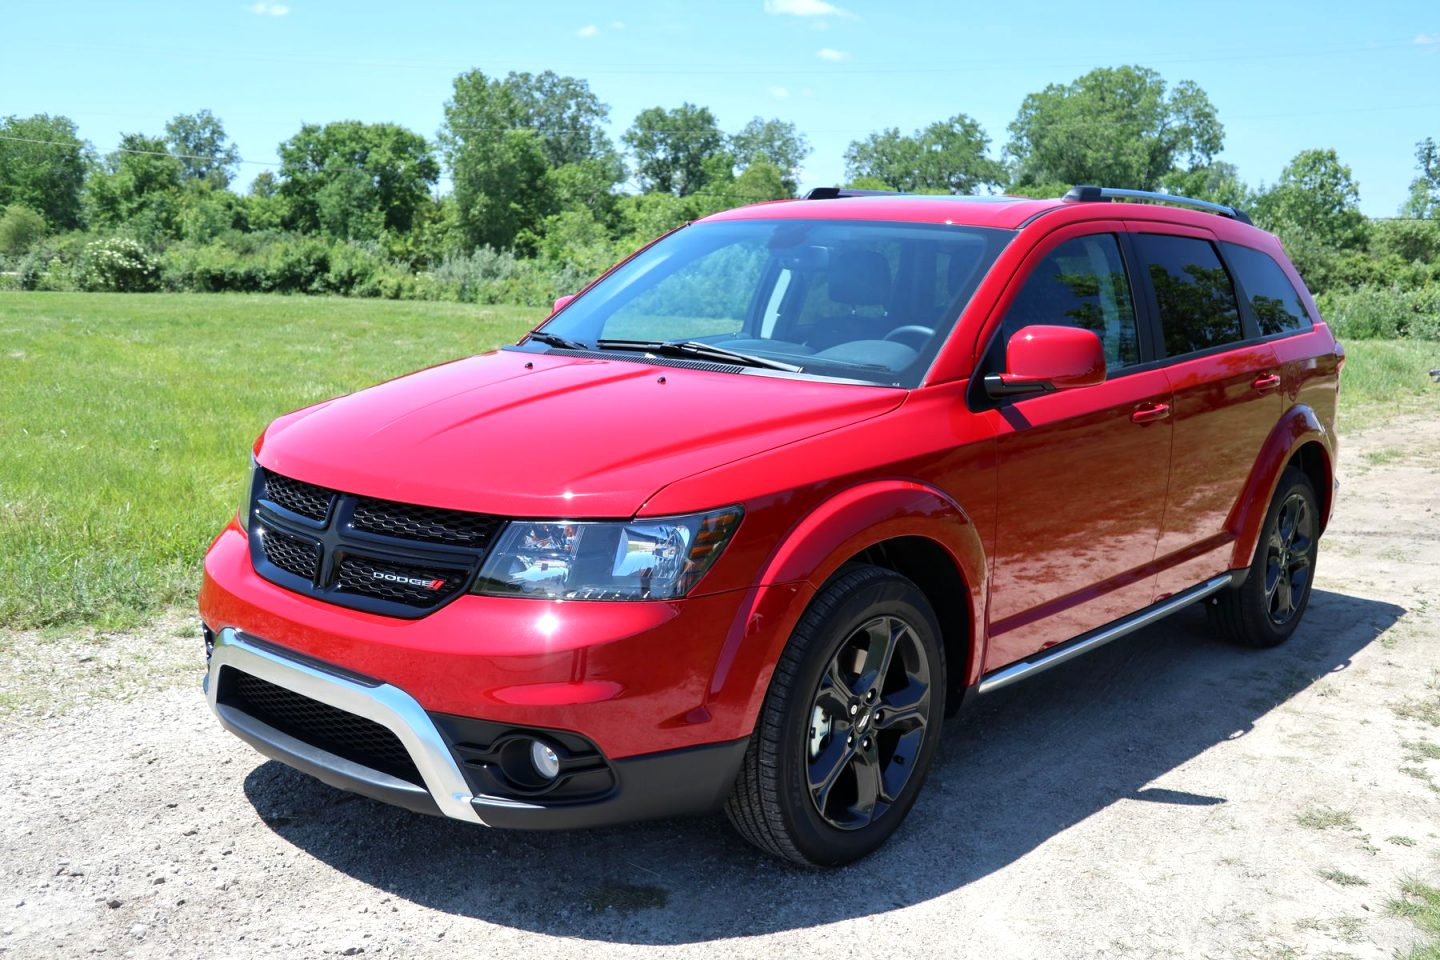 dodge journey 2021 Price, Design and Review